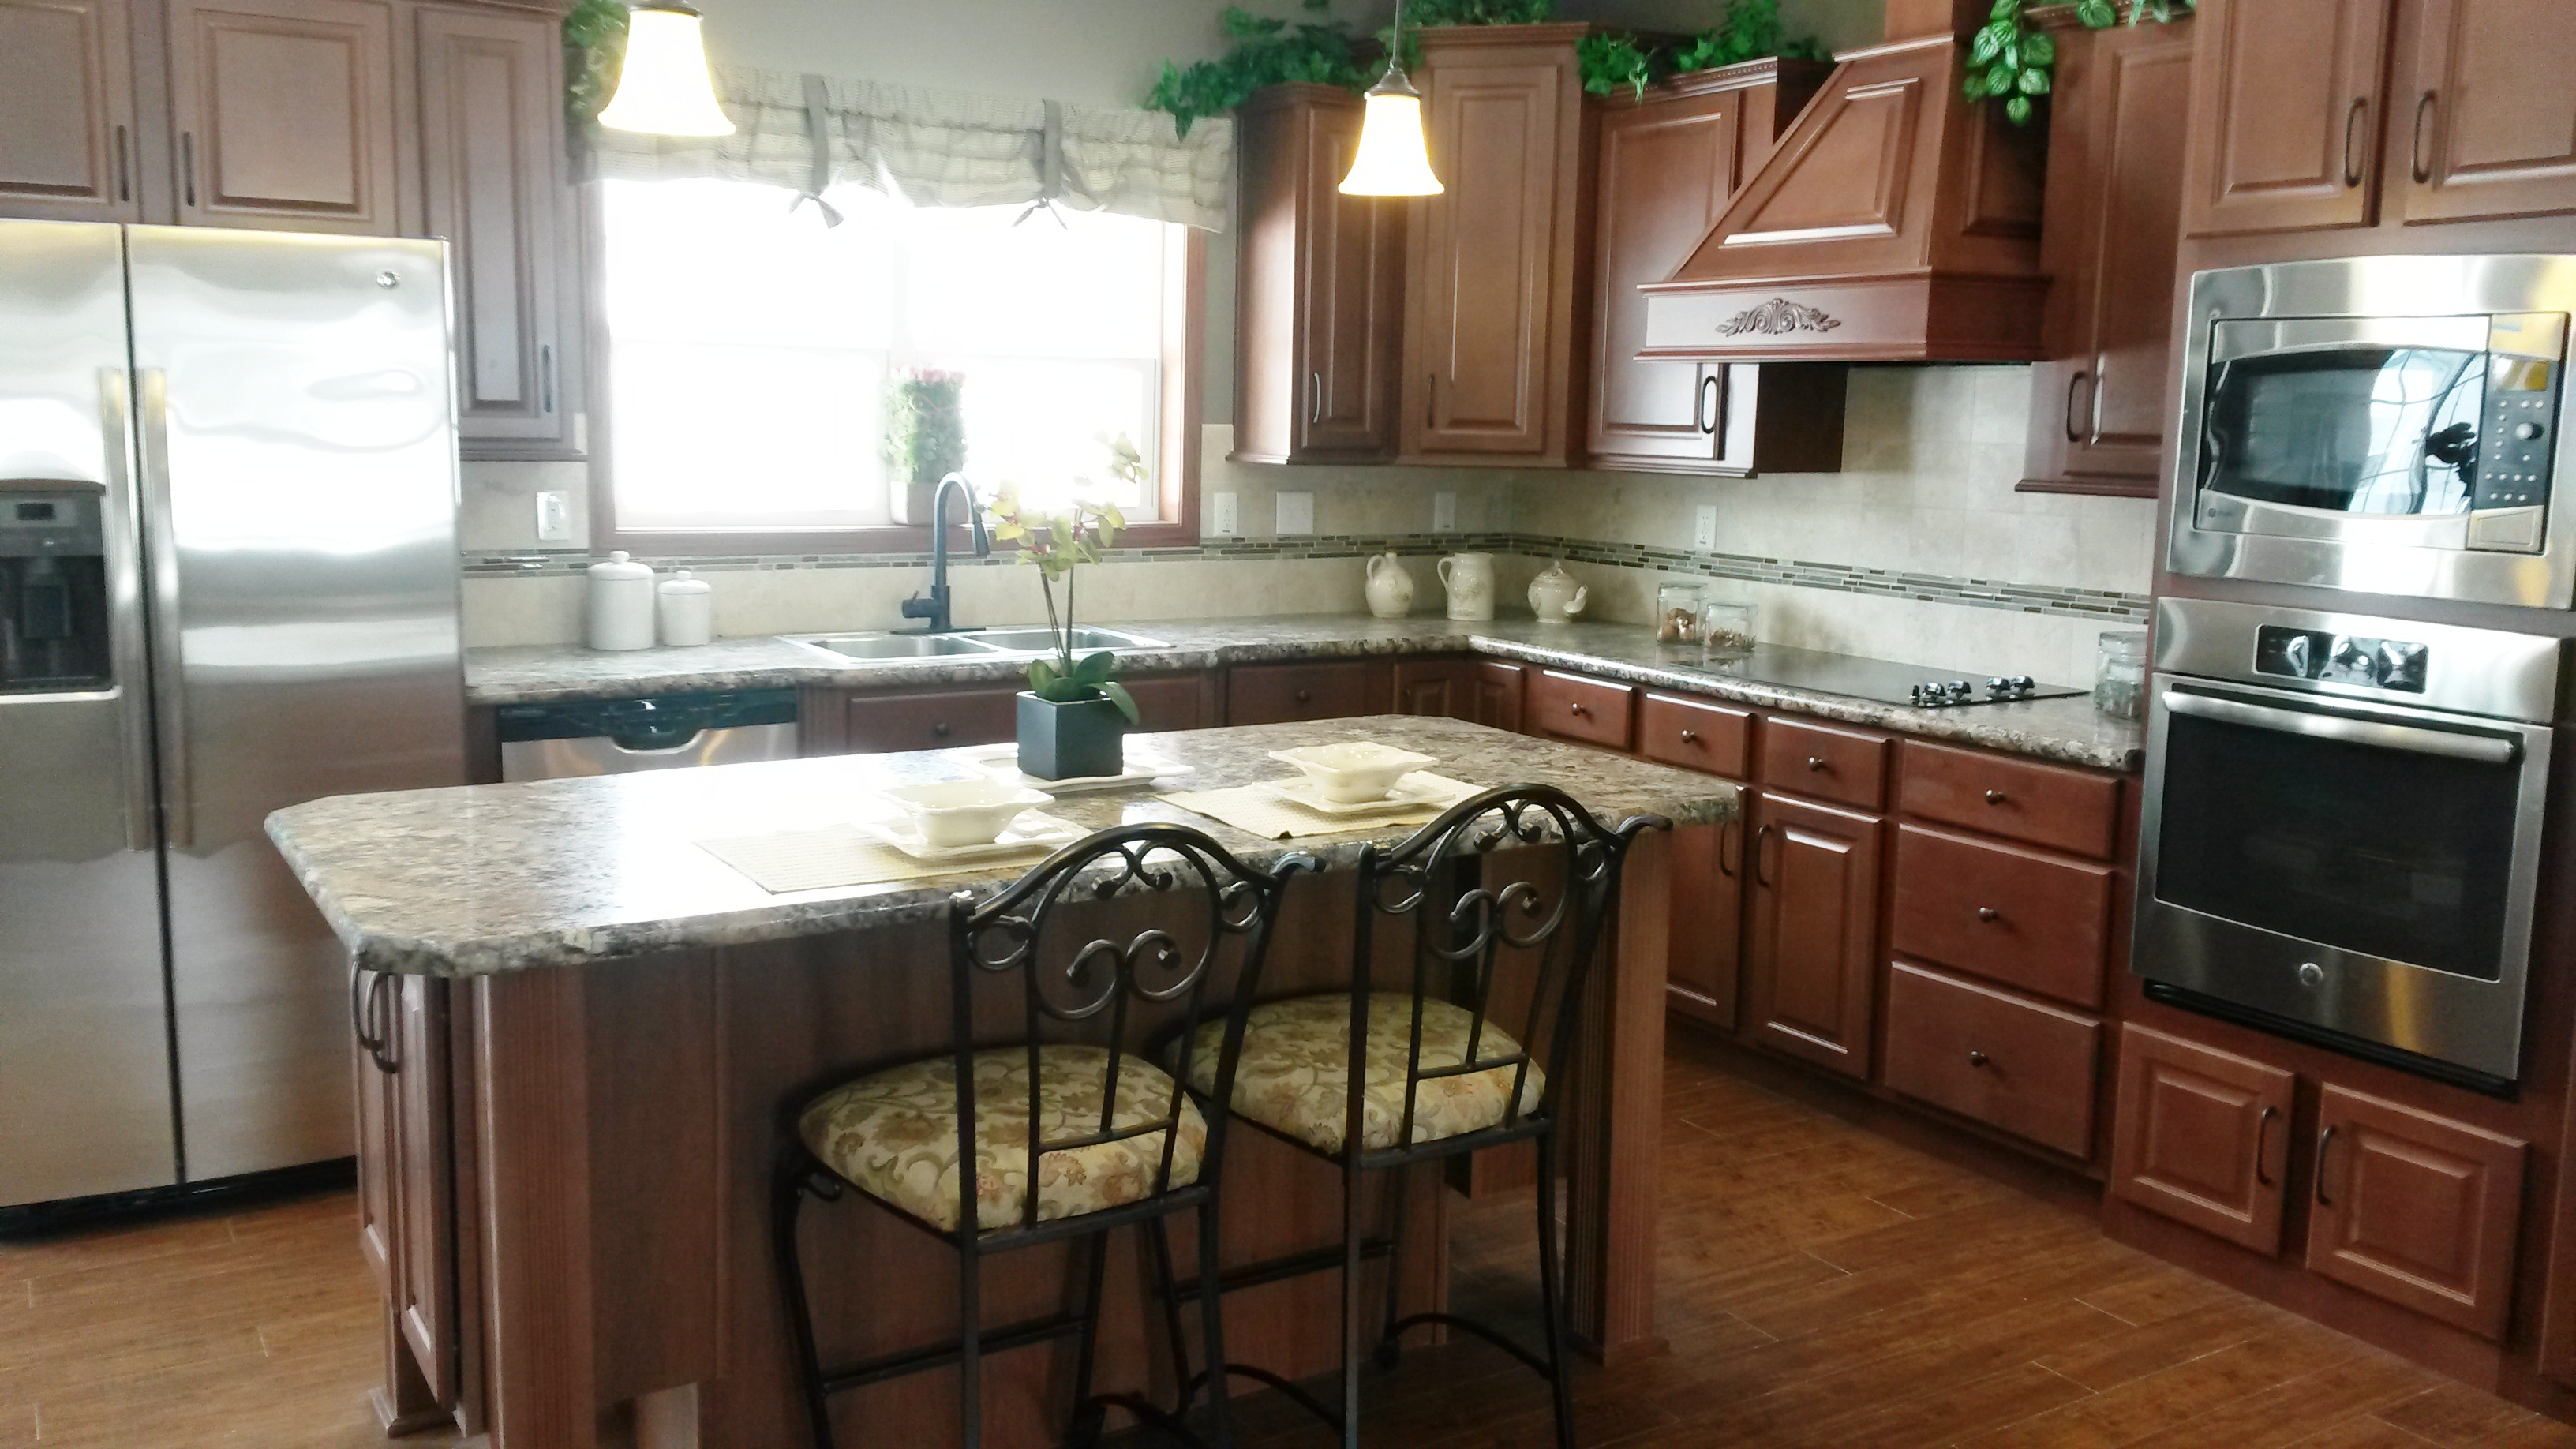 The kitchen, off the family room.